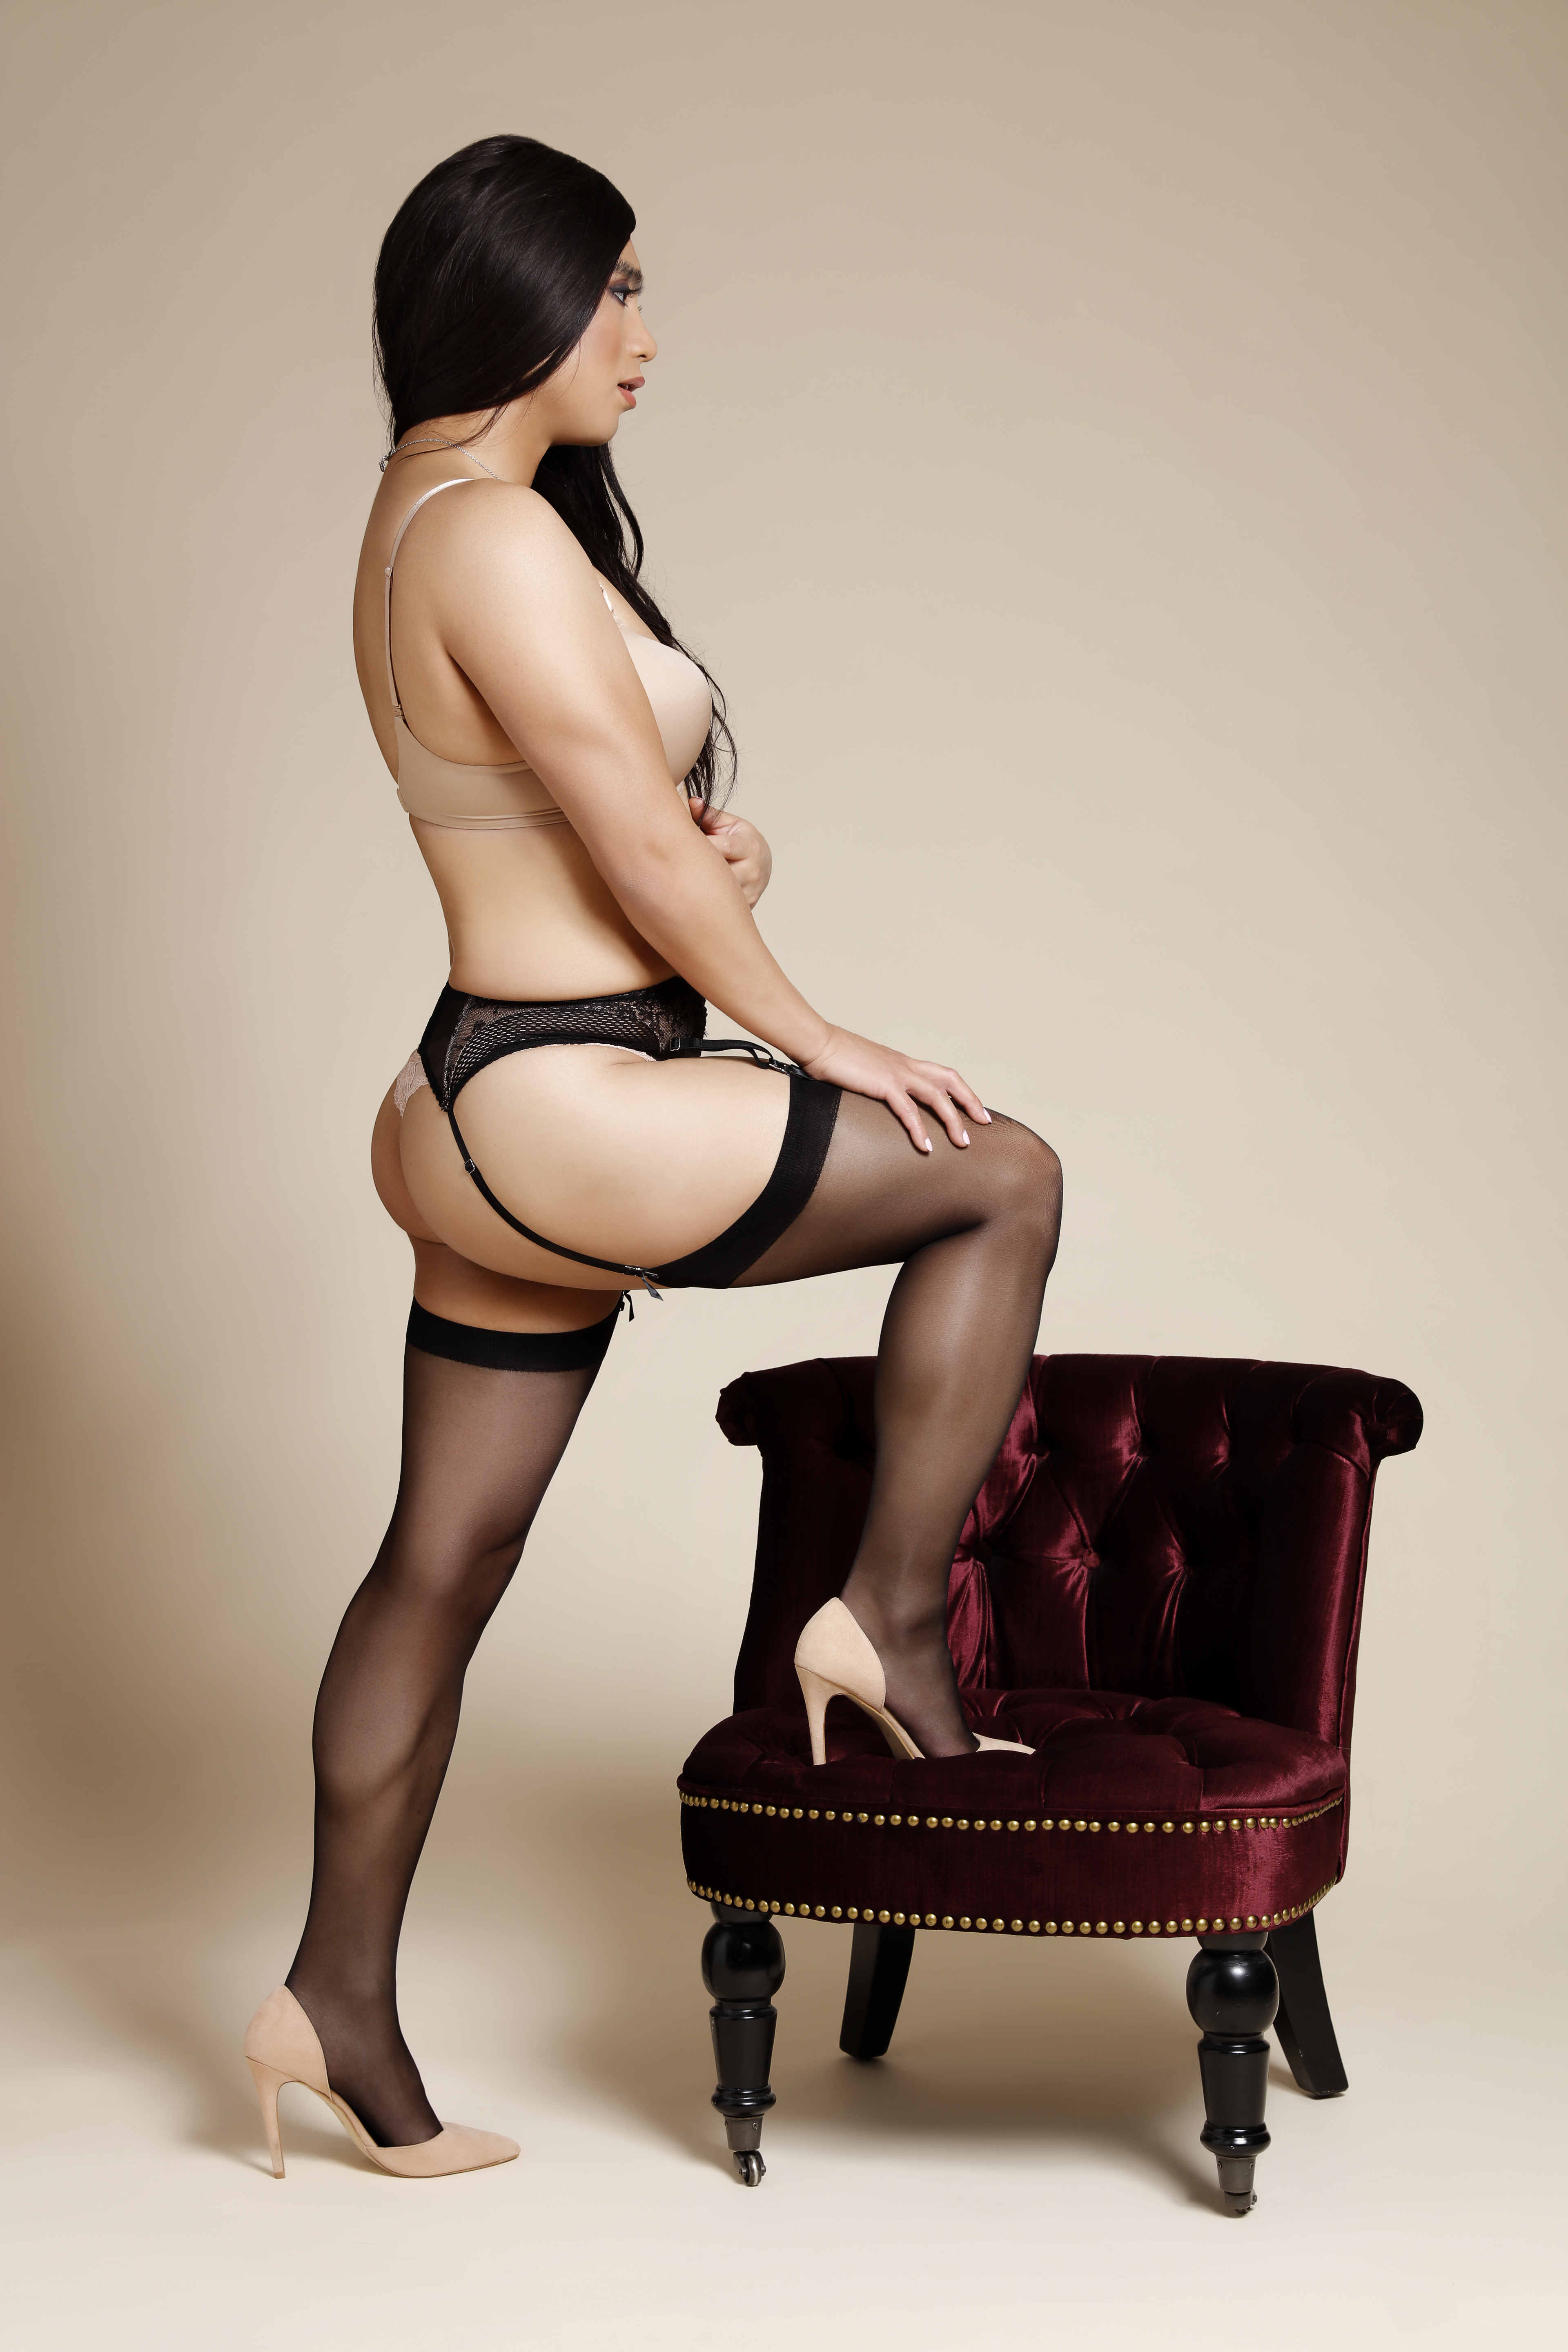 Nude satin lingerie black stockings and suspender